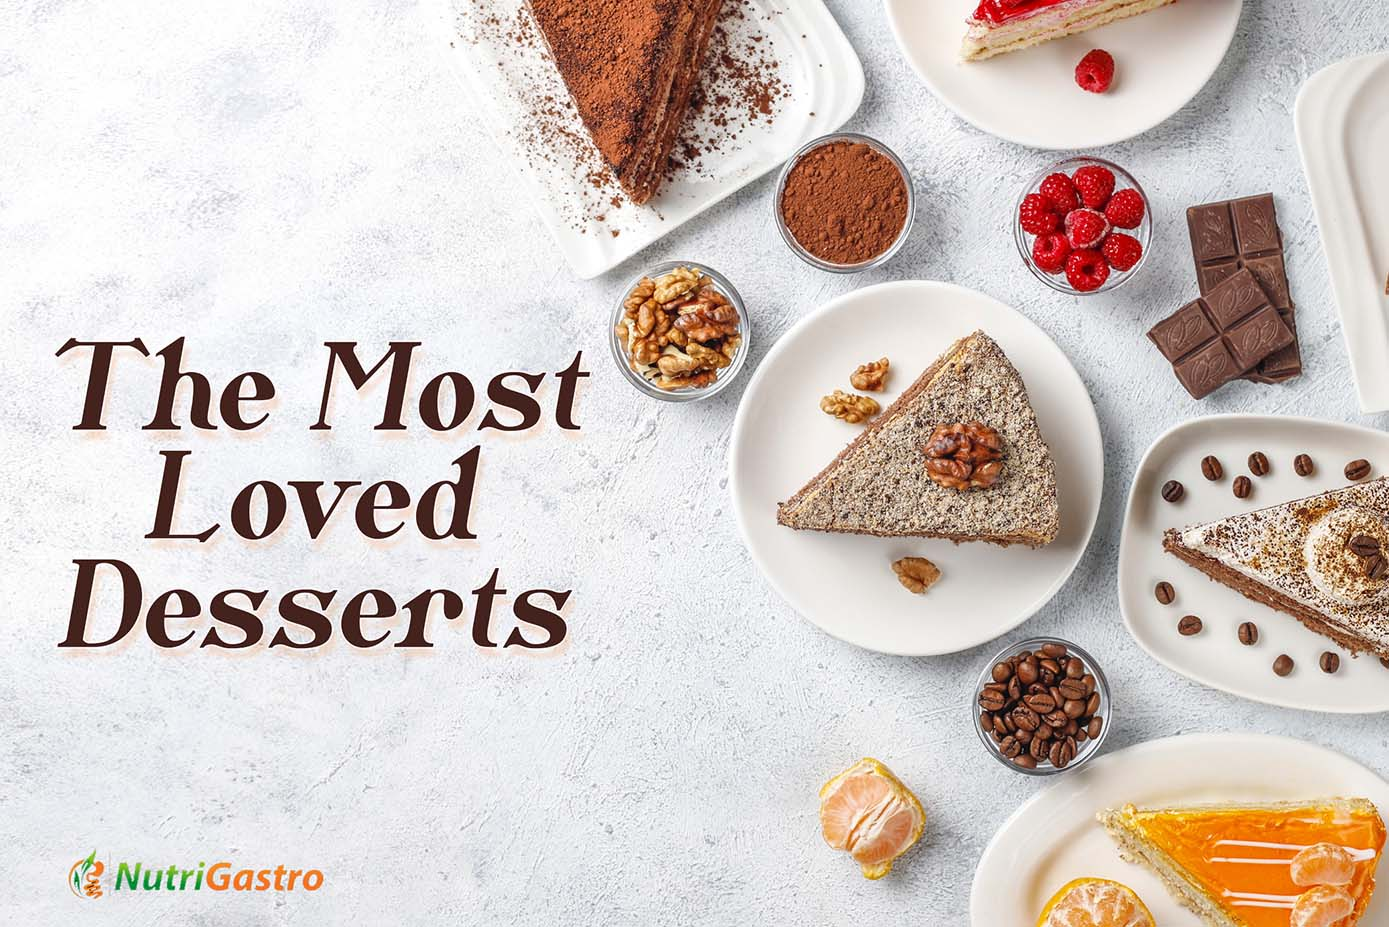 The most loved desserts banner